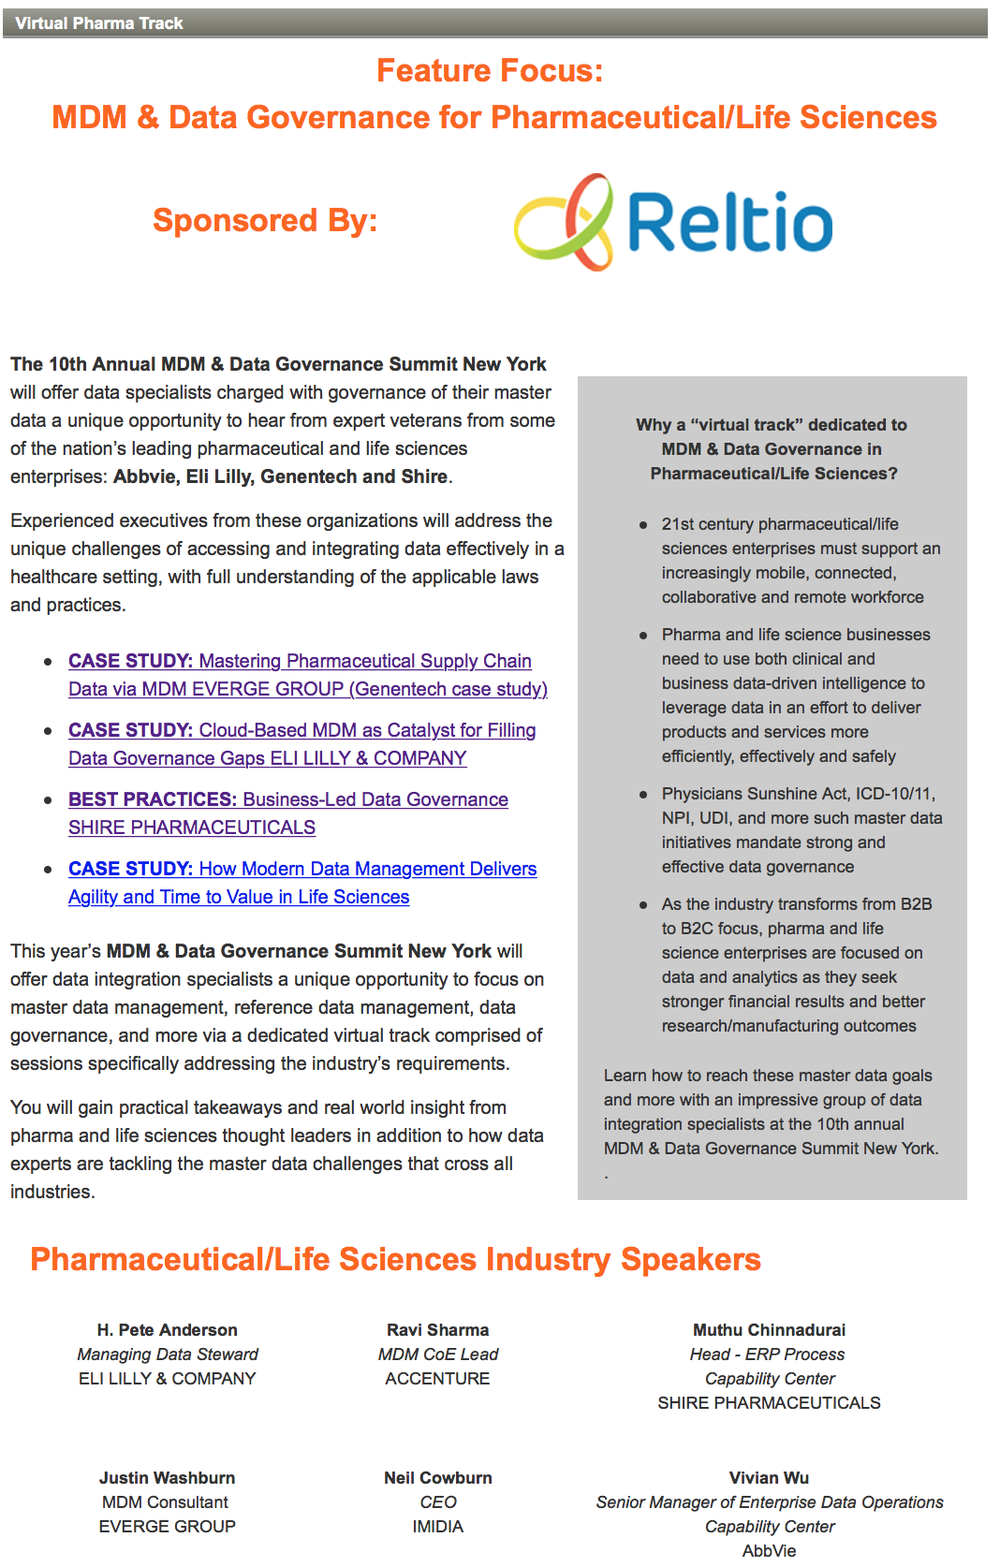 Reltio Sponsors Pharma Track at MDM Summit NYC 2015